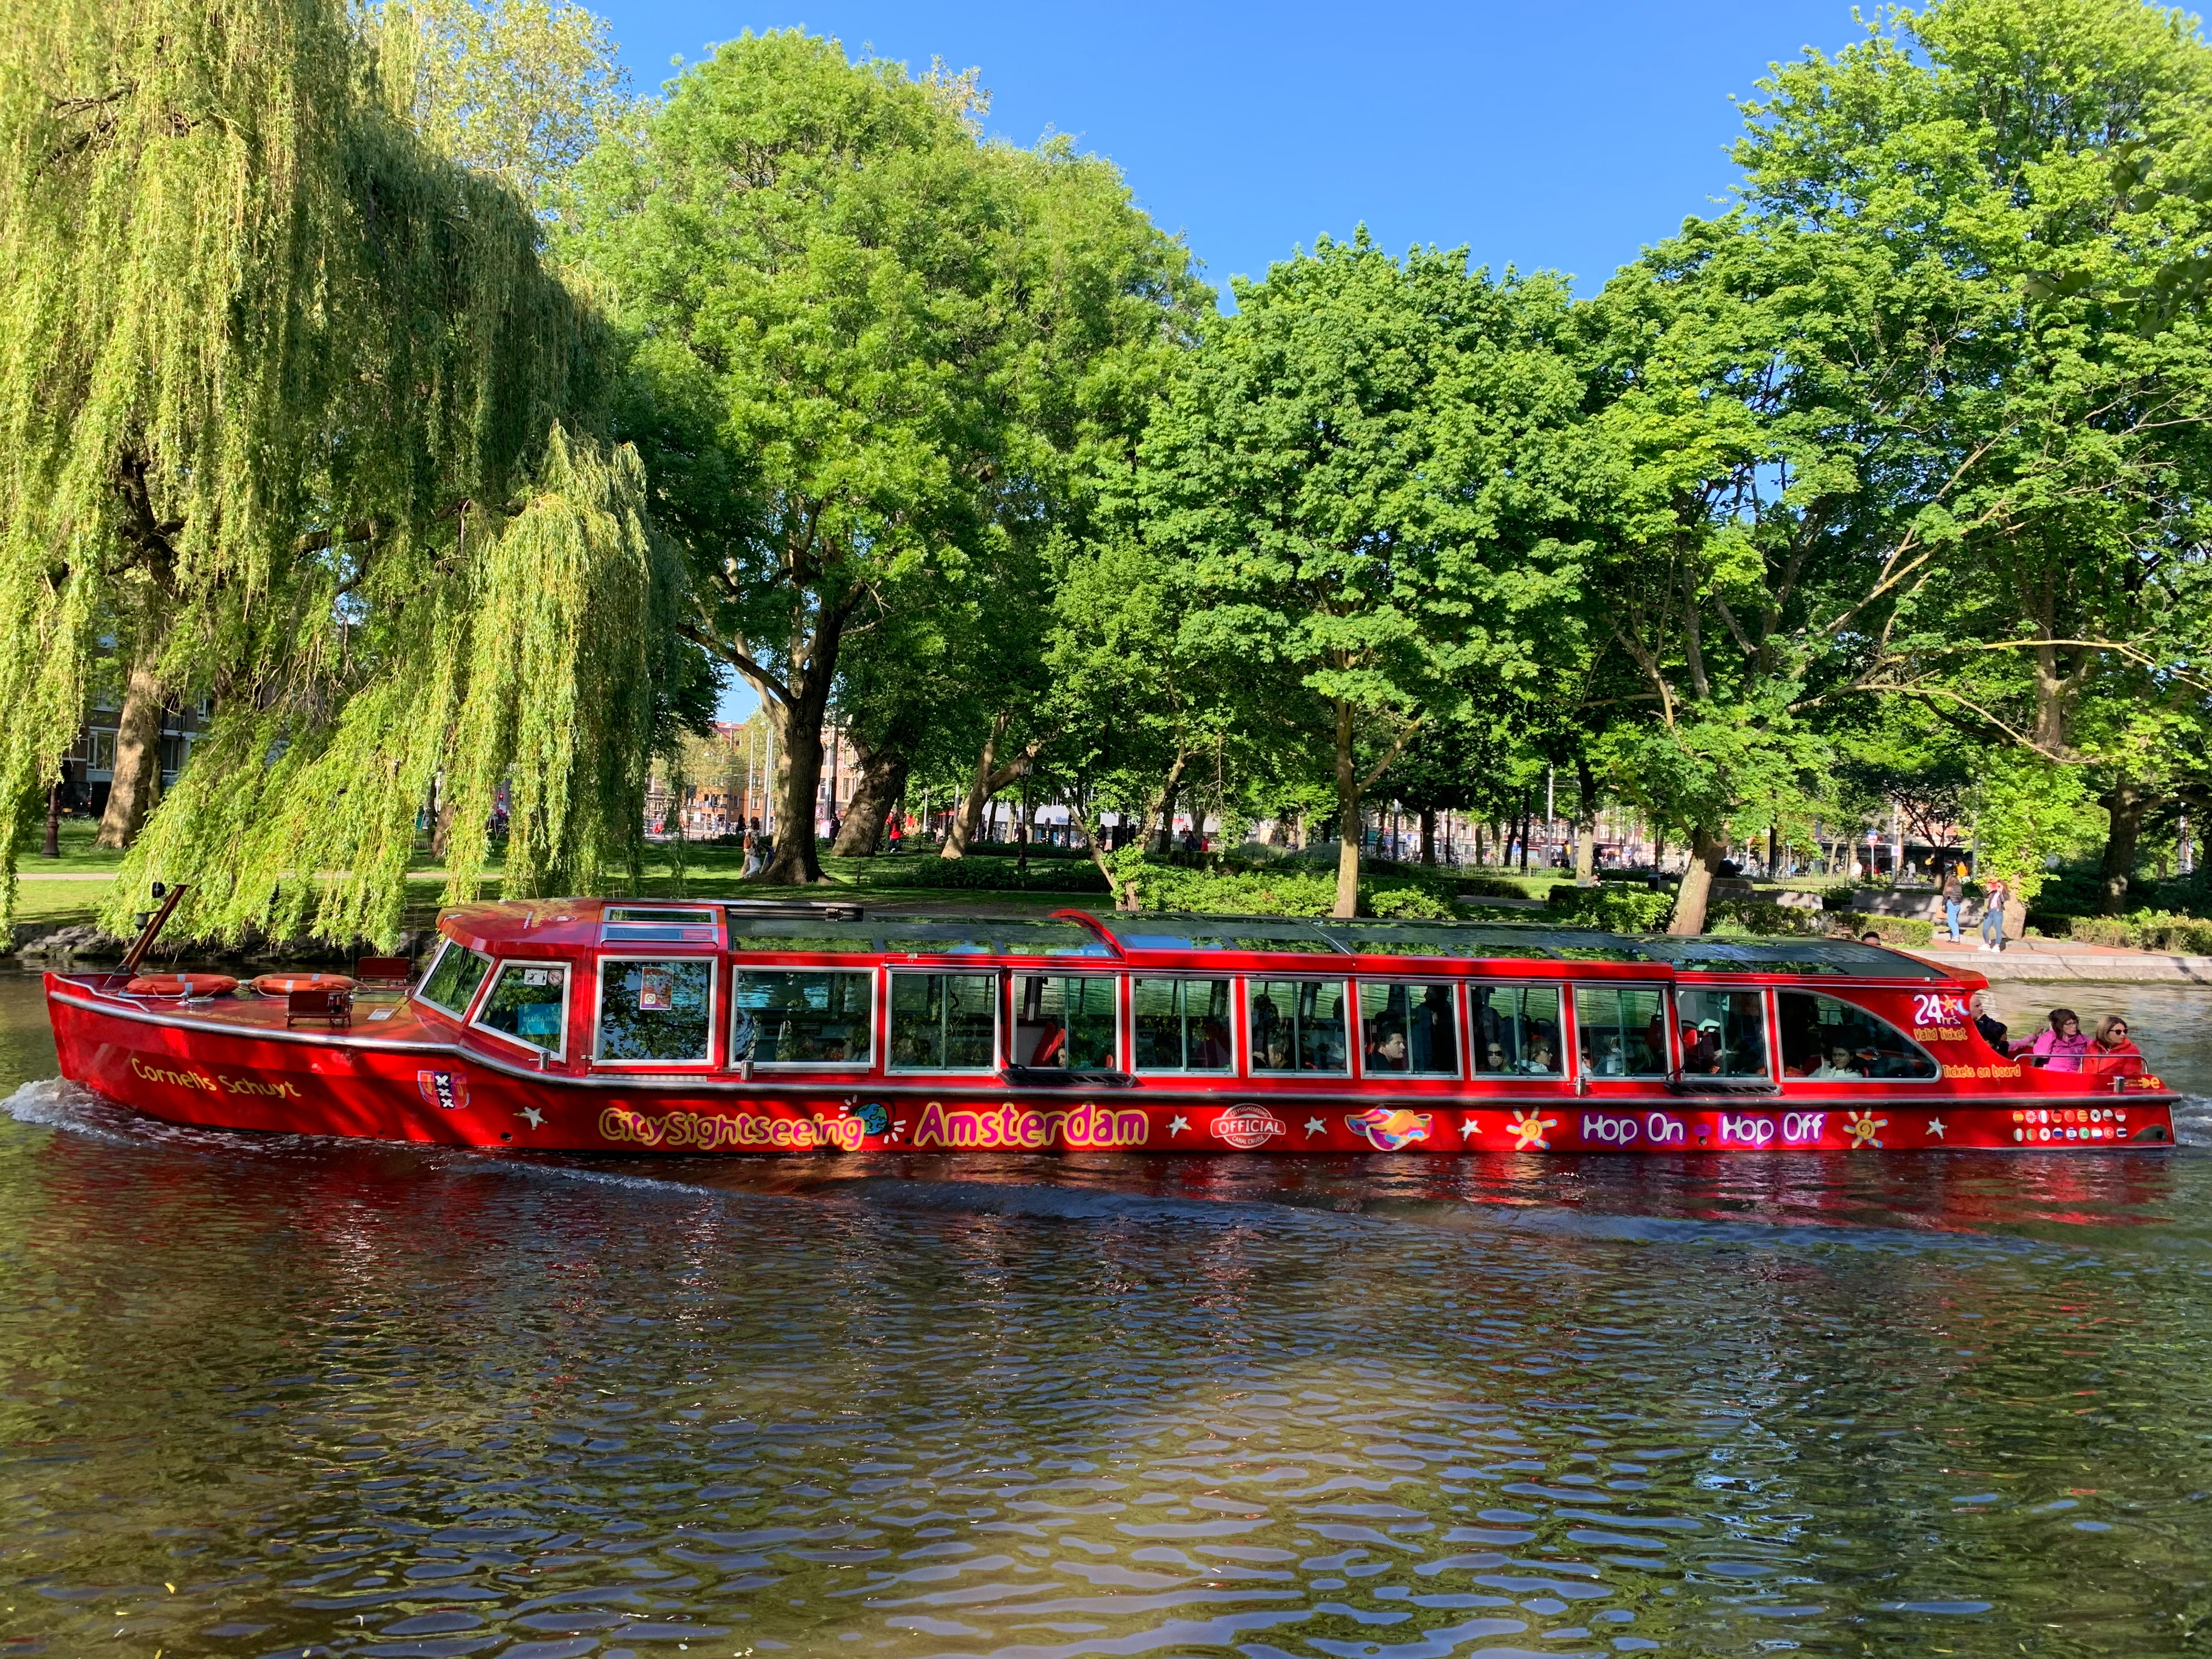 Amsterdam Cruise Canal, Things to Do in Amsterdam in February